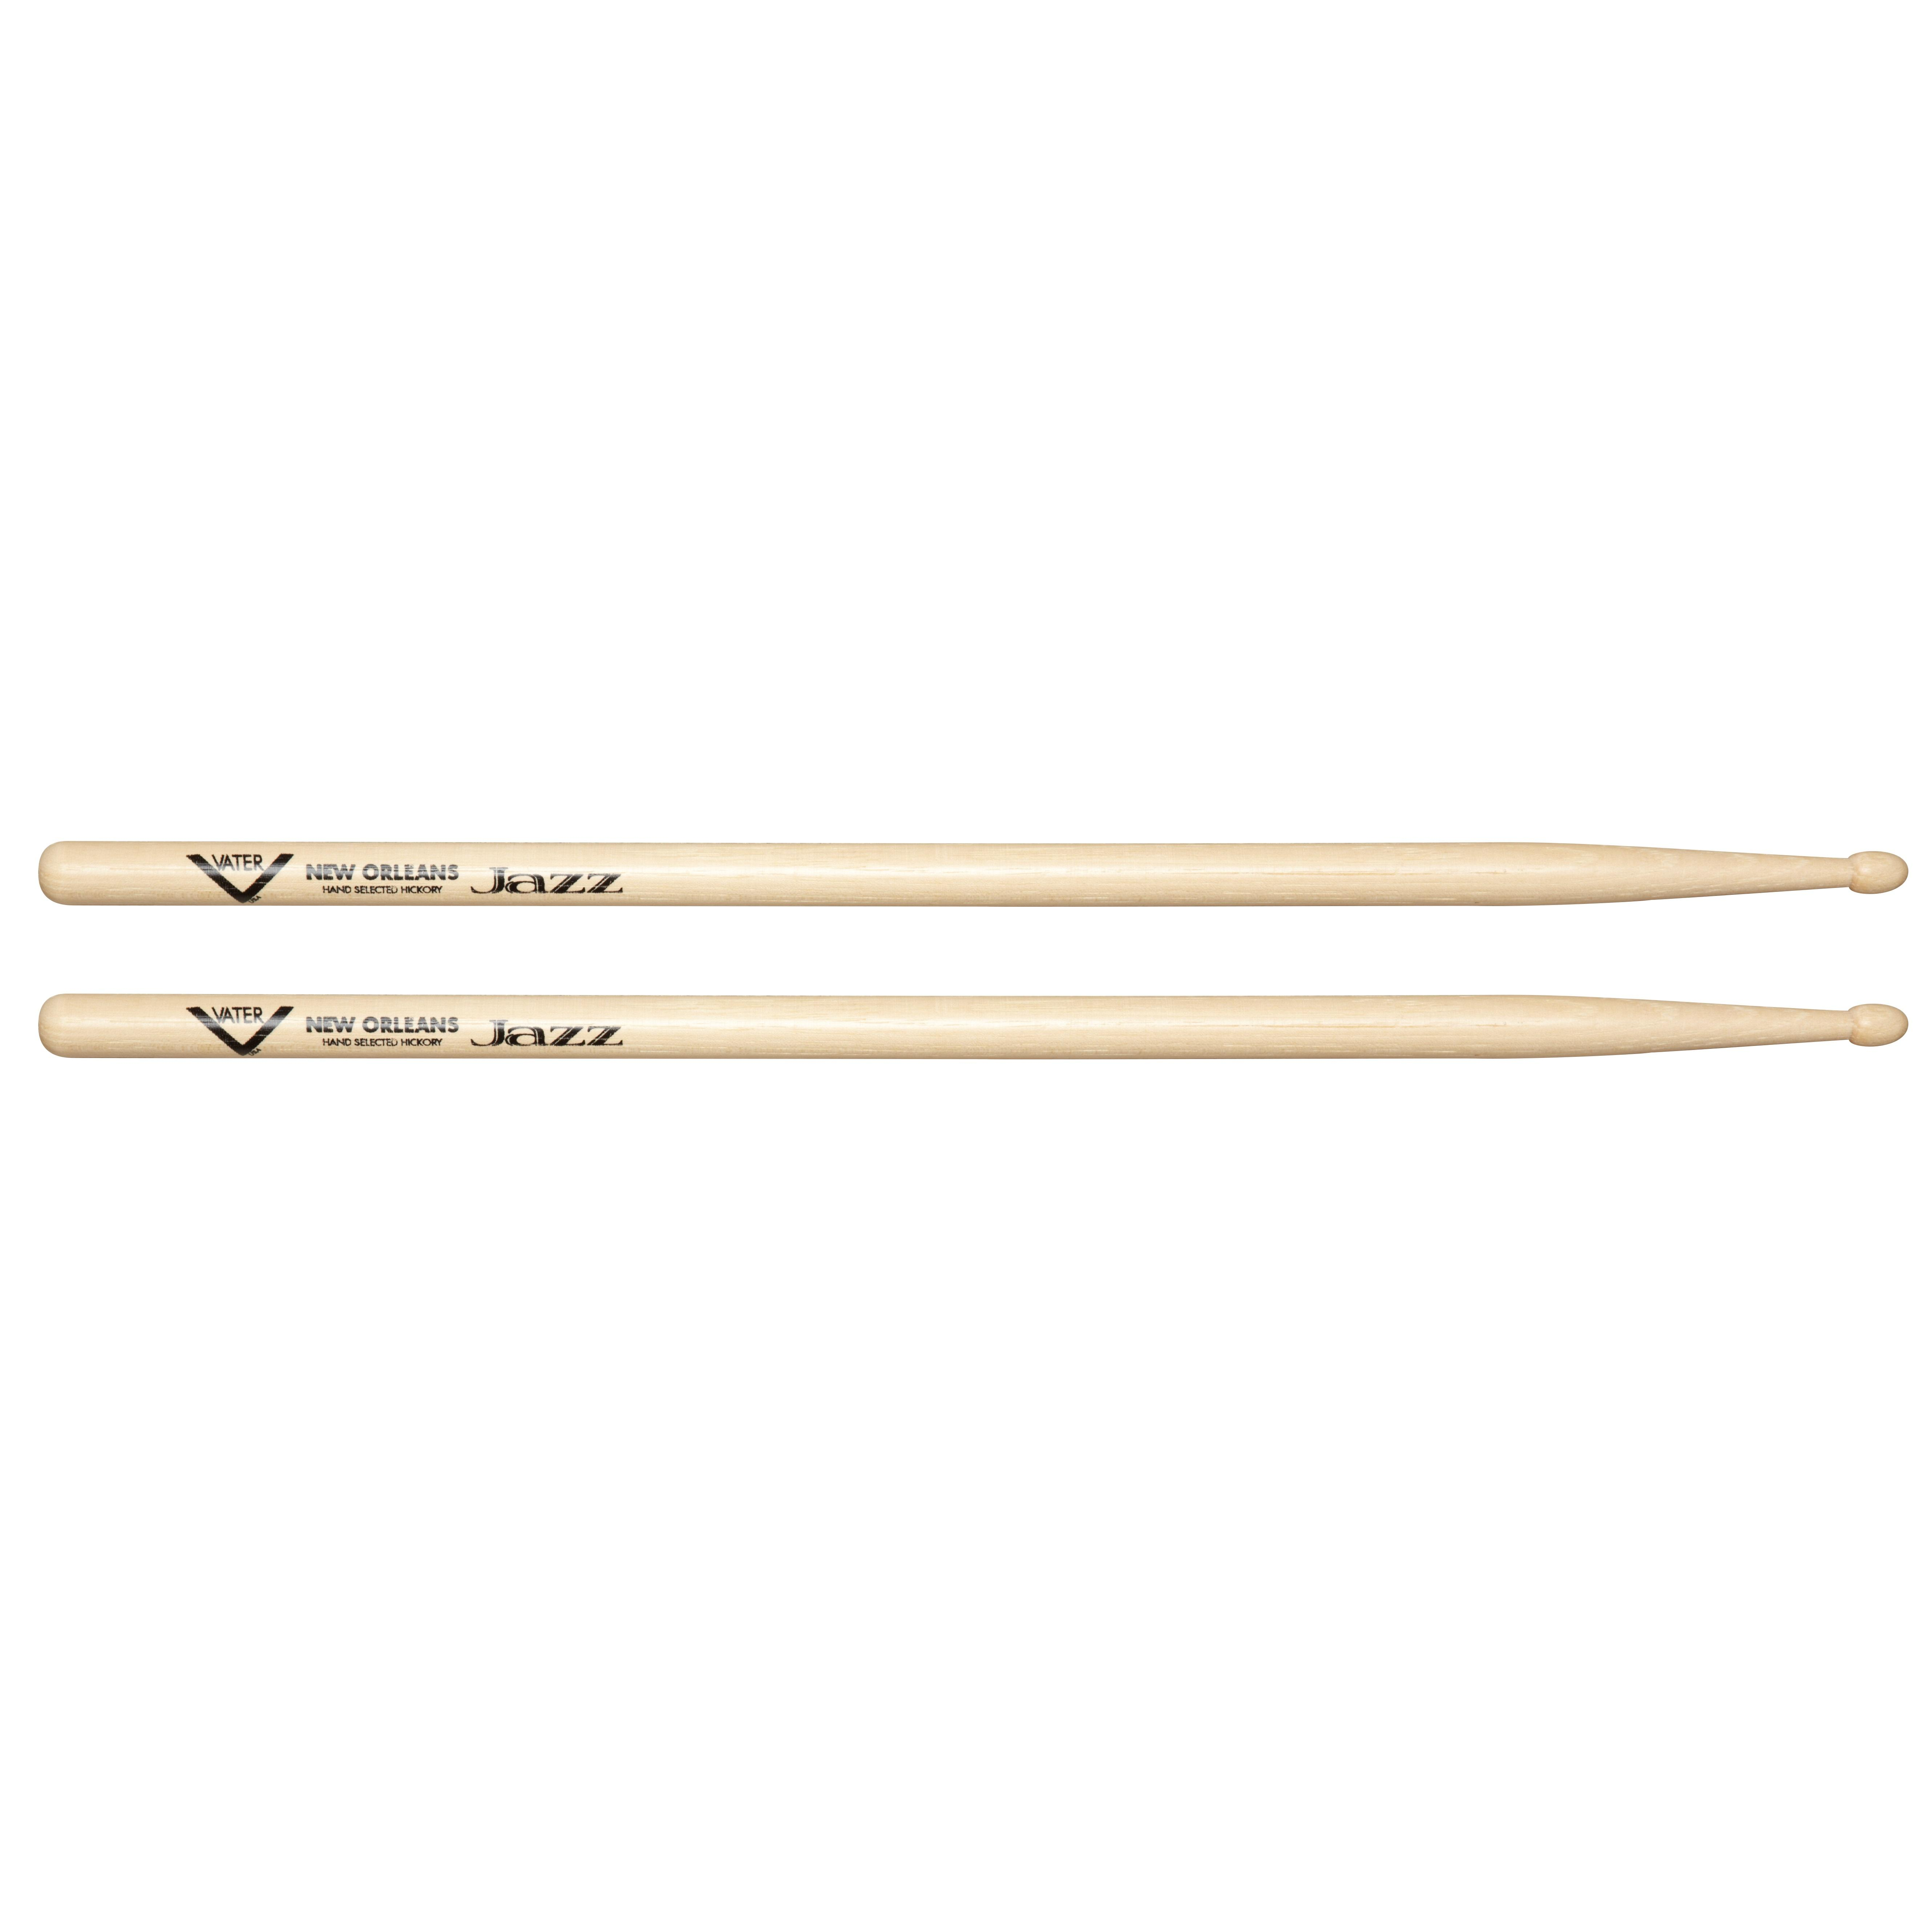 vater new orleans jazz hickory drum sticks wood pair musical instruments. Black Bedroom Furniture Sets. Home Design Ideas